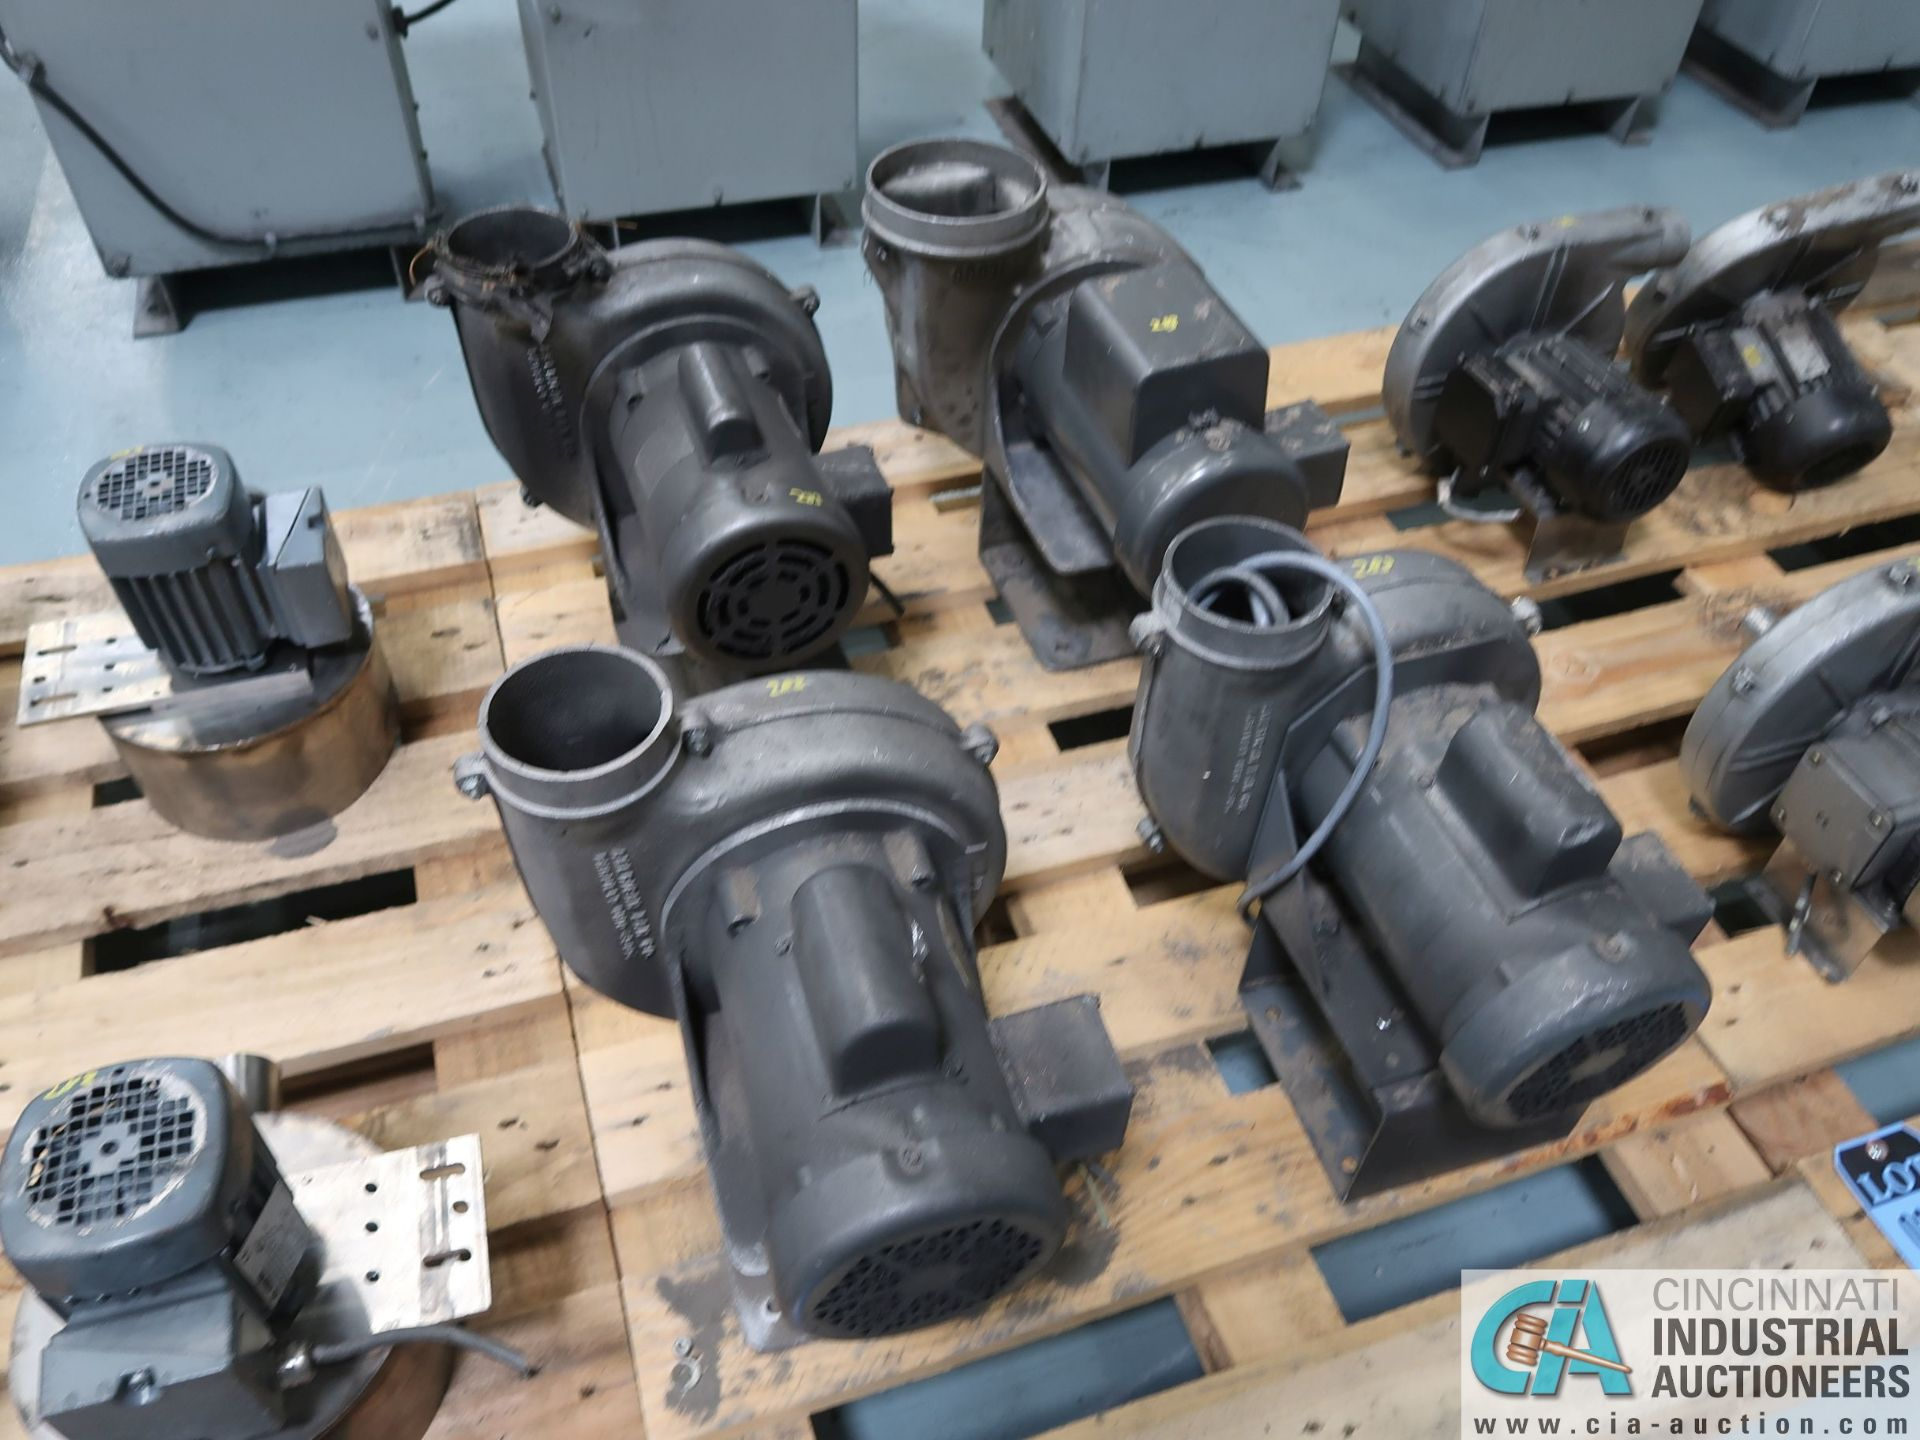 Lot 283 - 0.5 HP BLOWER MOTORS *$25.00 RIGGING FEE DUE TO INDUSTRIAL SERVICES AND SALES*